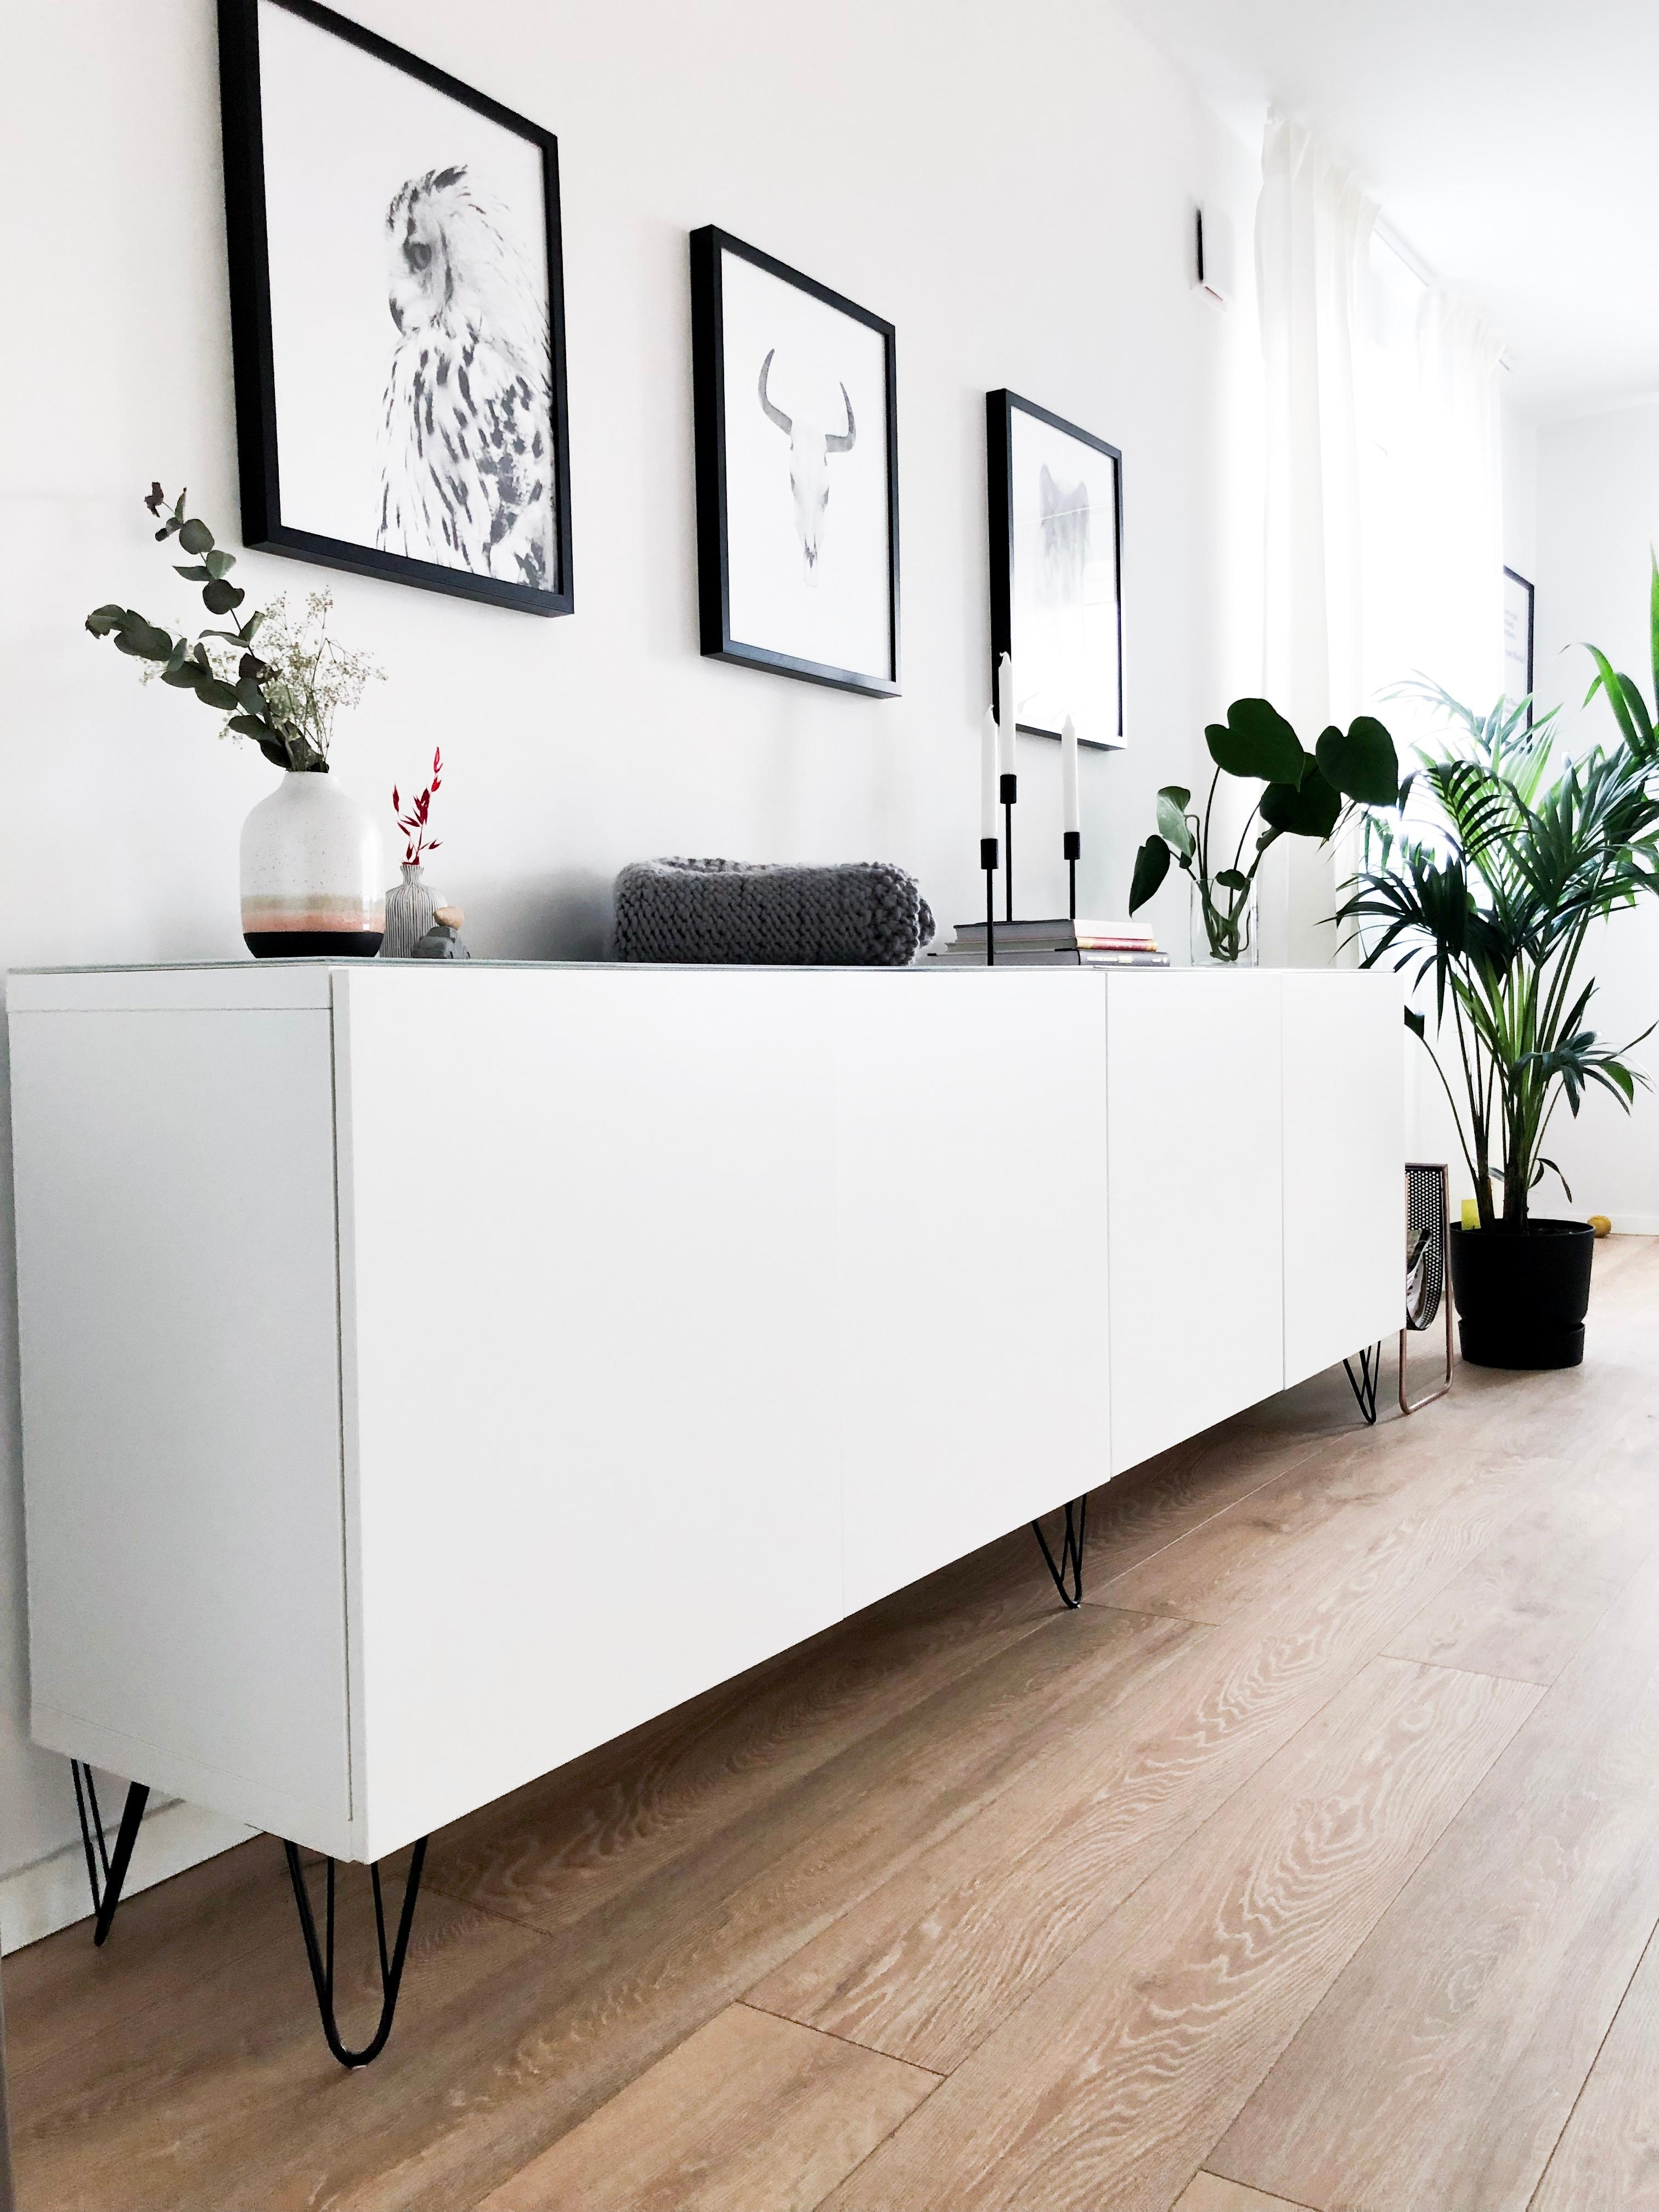 Clean and simple livingchallenge sideboard minimalism plants  374f7686 0da9 4320 a038 f3efa208f6b2